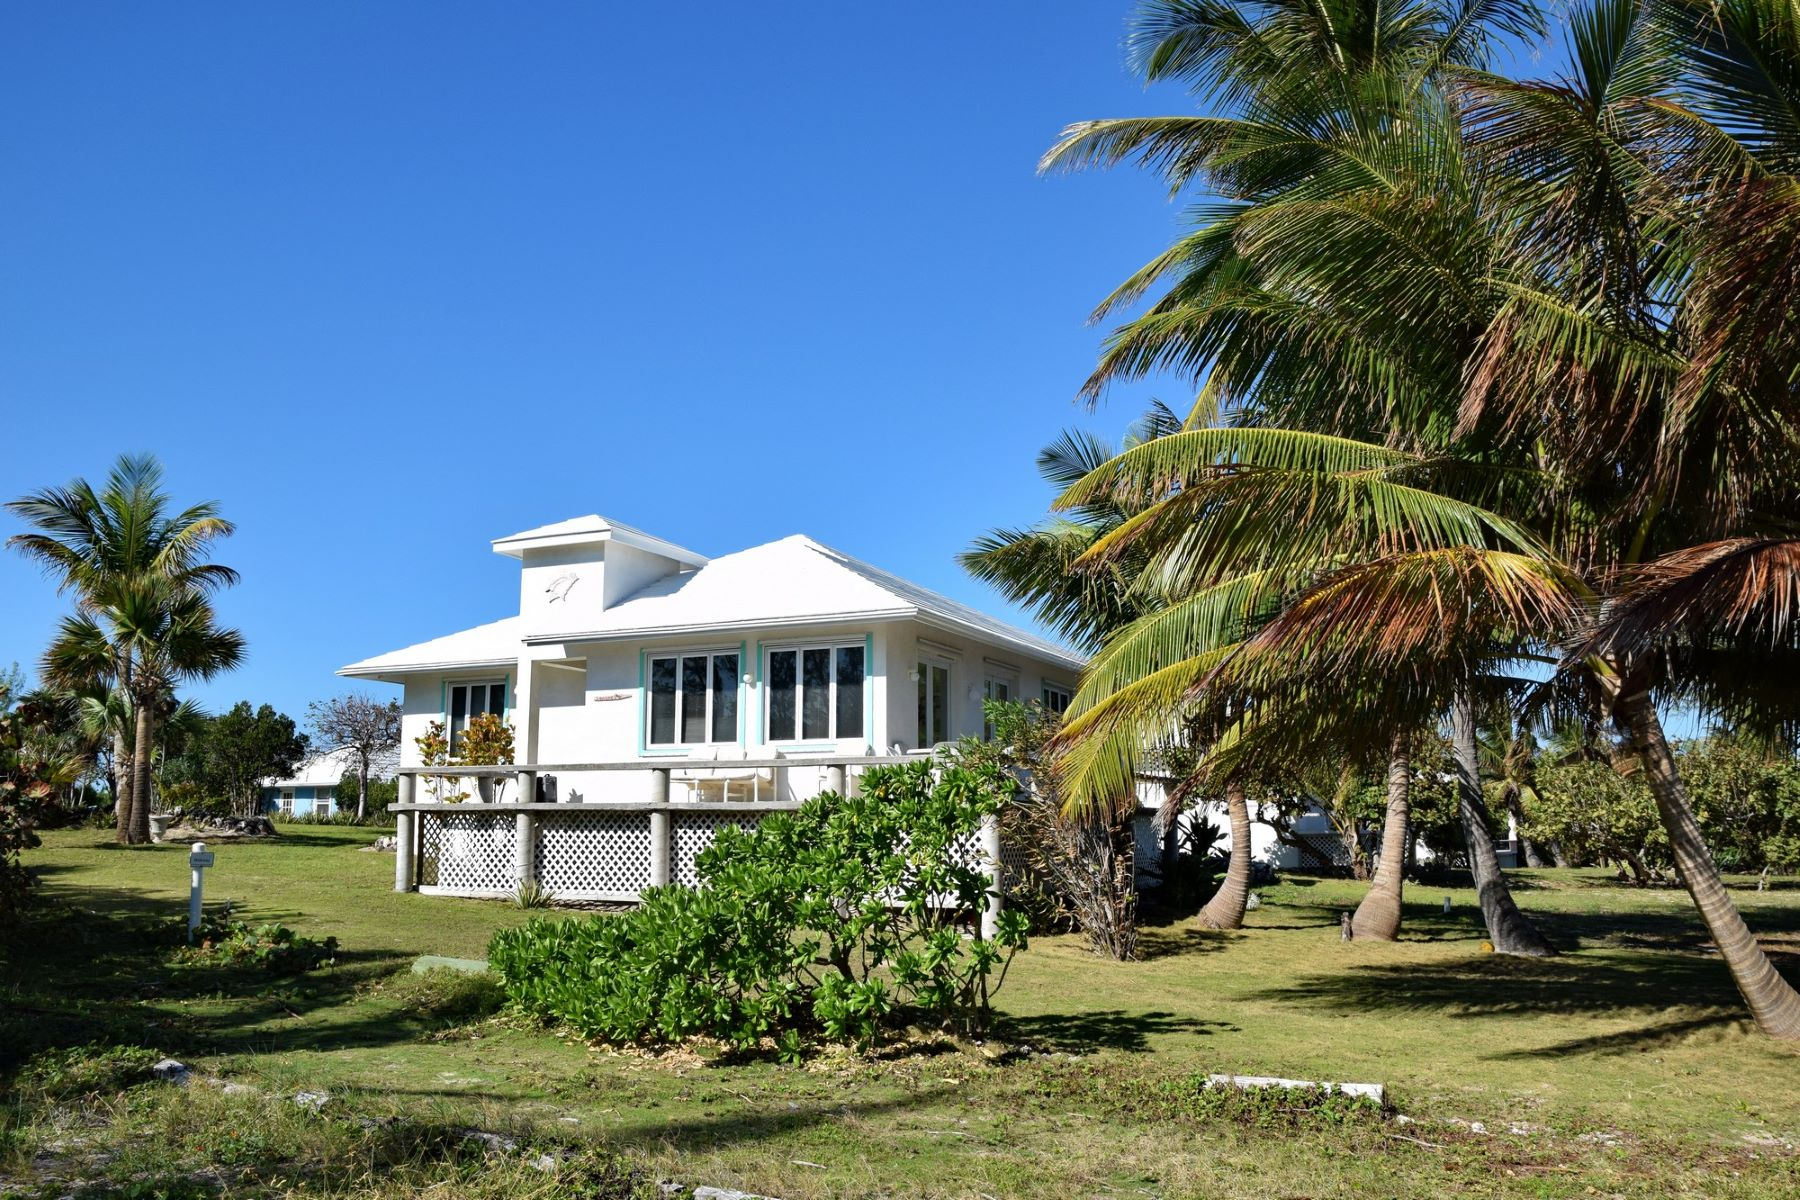 Single Family Home for Sale at Sea Shell Cottage Green Turtle Cay, Abaco, Bahamas